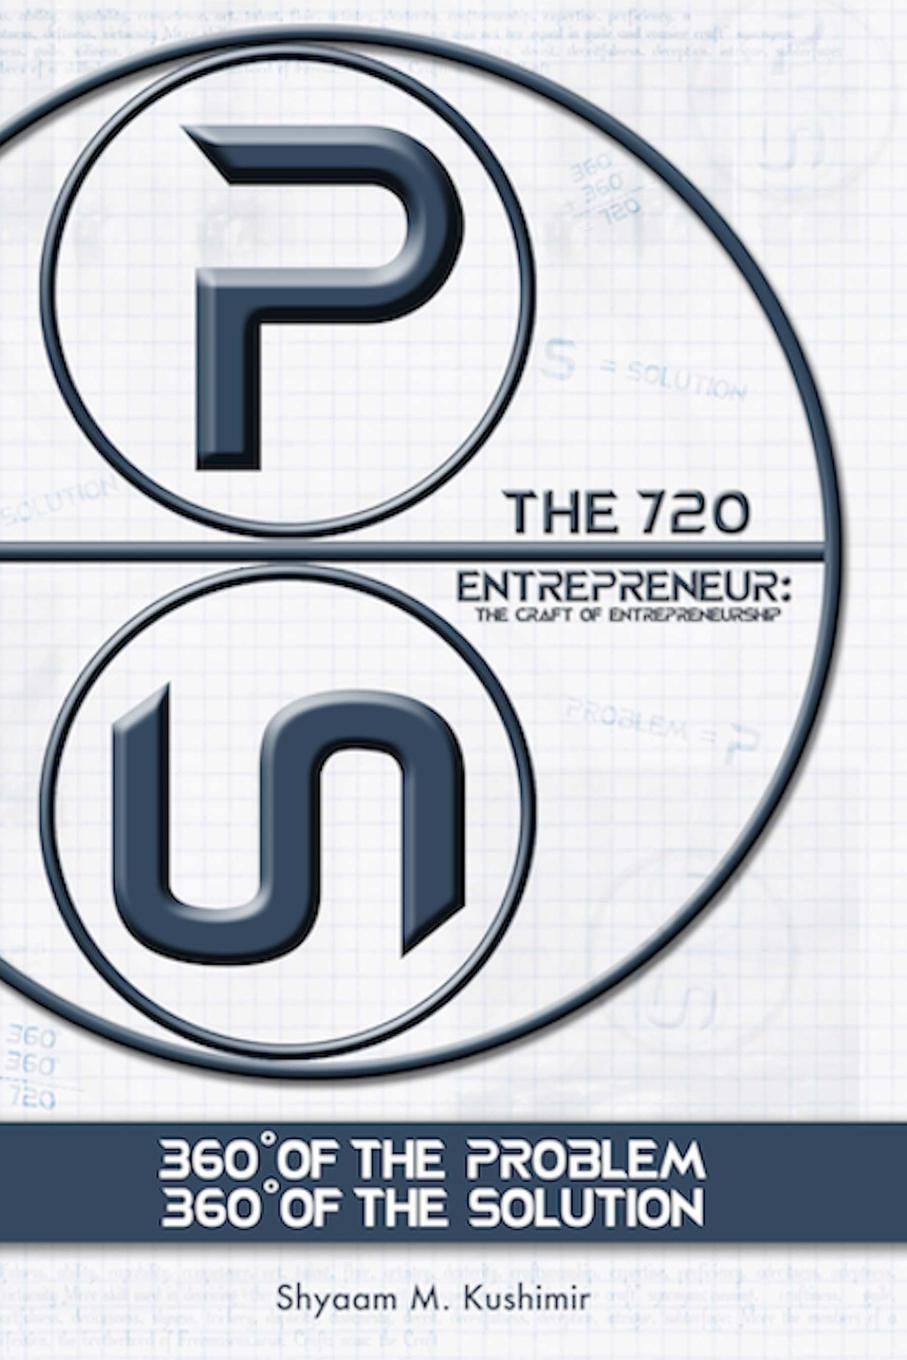 "The 720 Entrepreneur. The Craft of Entrepreneurship ""The 720 Entrepreneur: The Craft of Entrepreneurship"" is..."